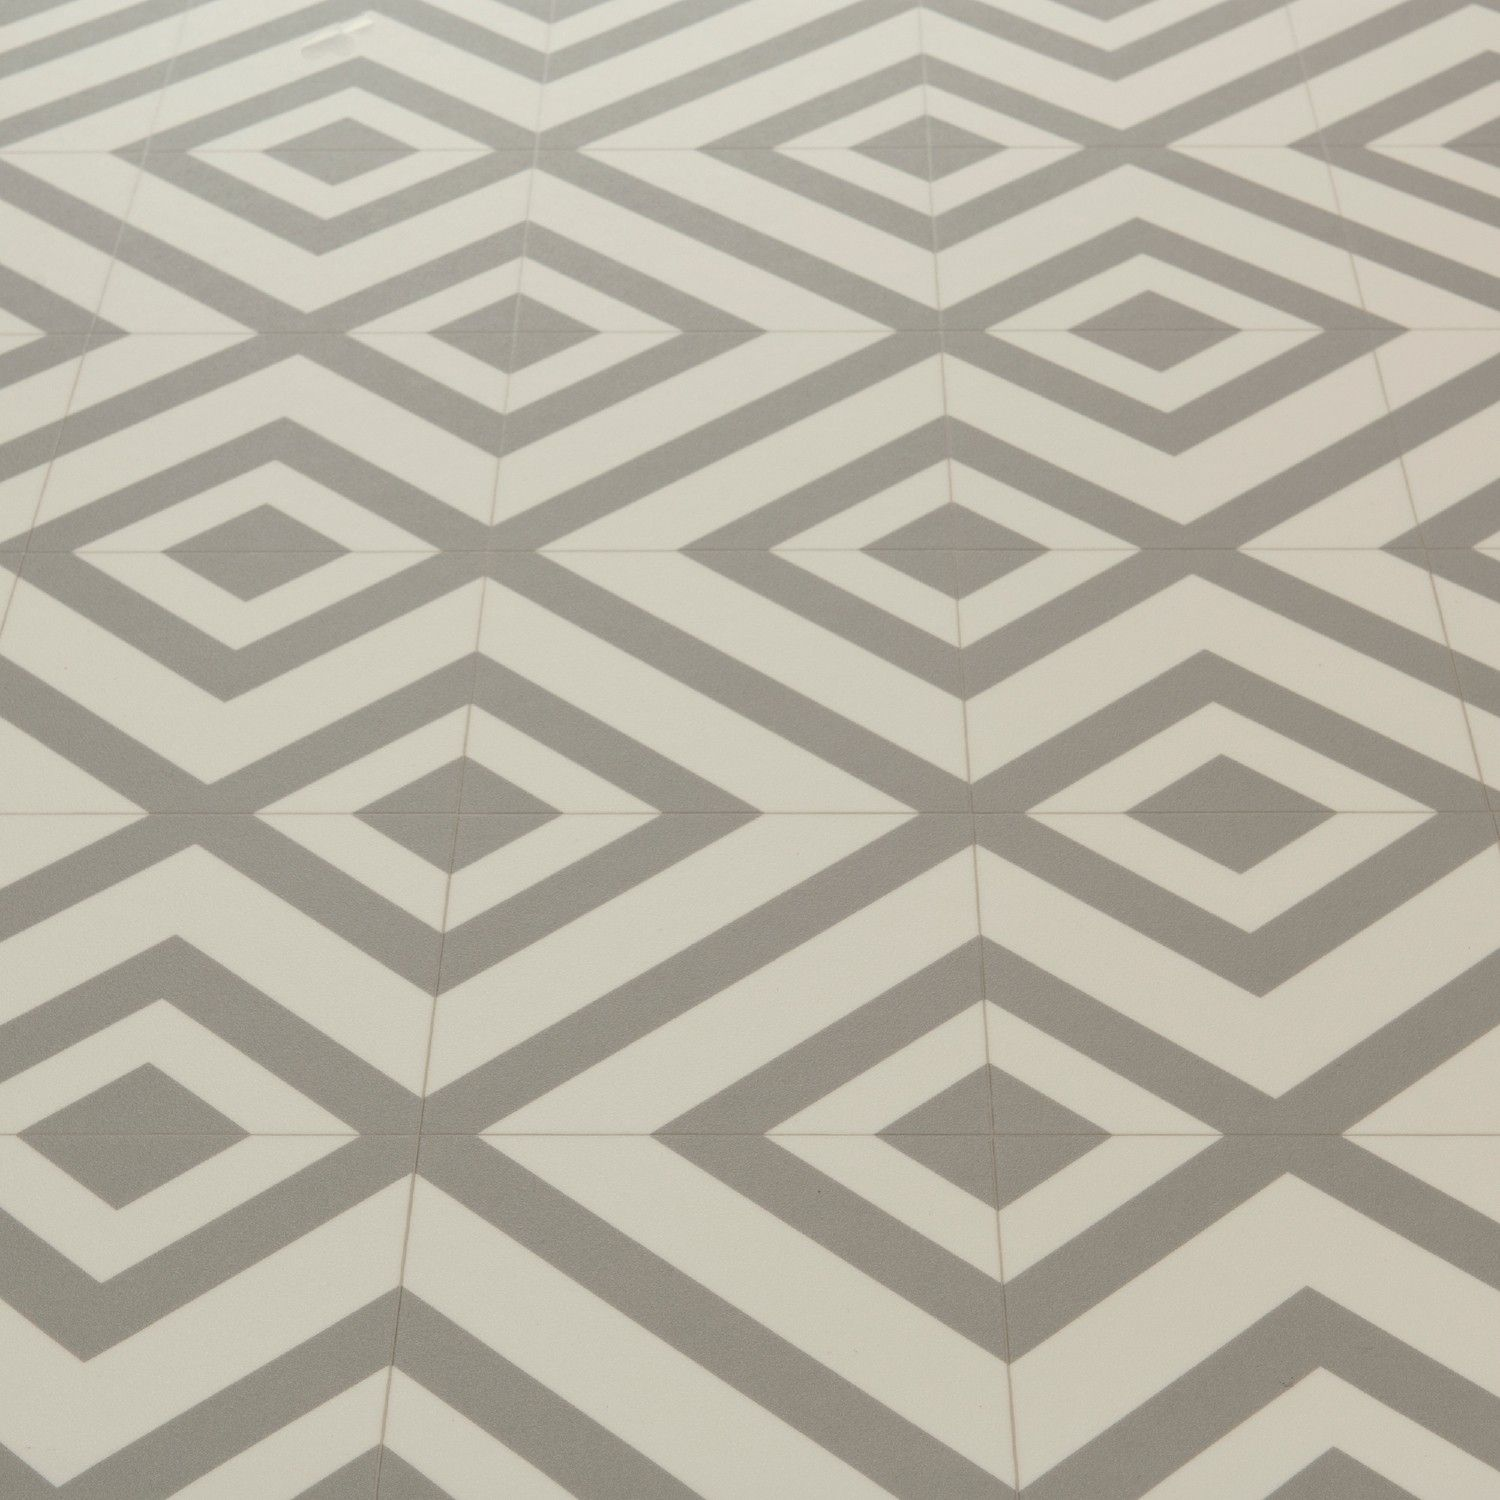 Mardi Gras Sagres Grey Patterned Vinyl Flooring Carpetright - Grey patterned vinyl floor tiles